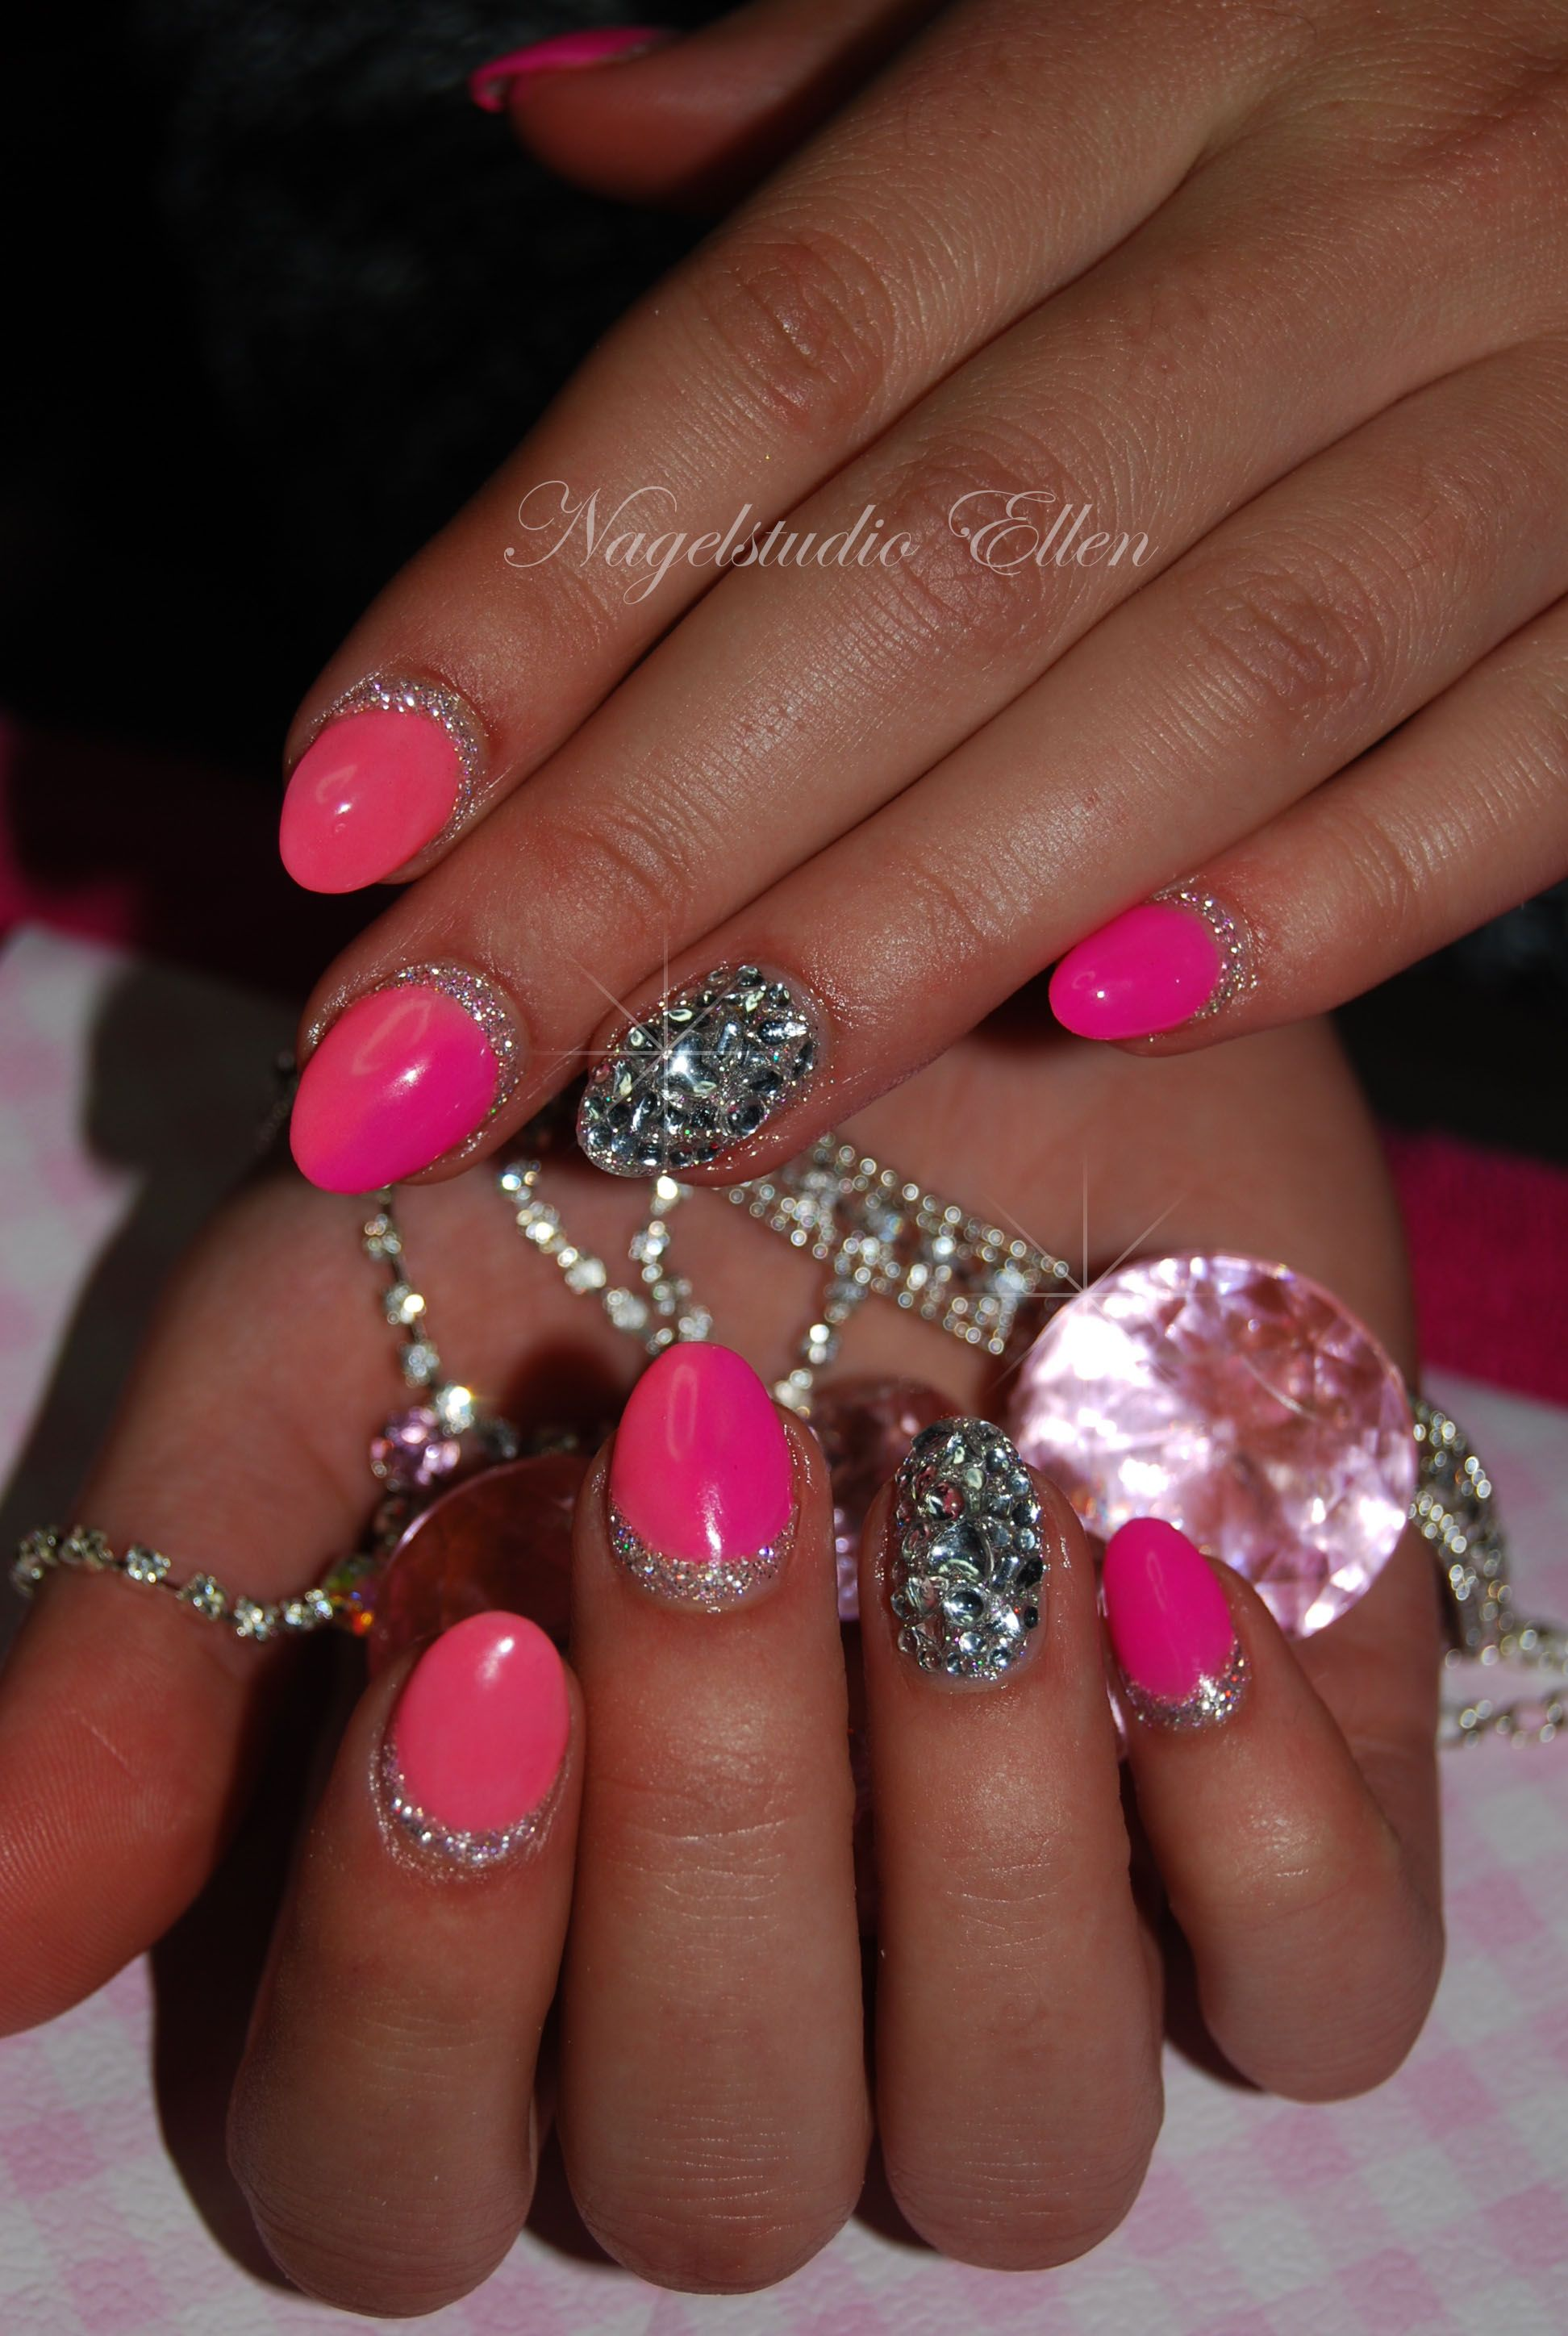 Pink and diamonds nails | Nails by me... | Pinterest | Pink ...